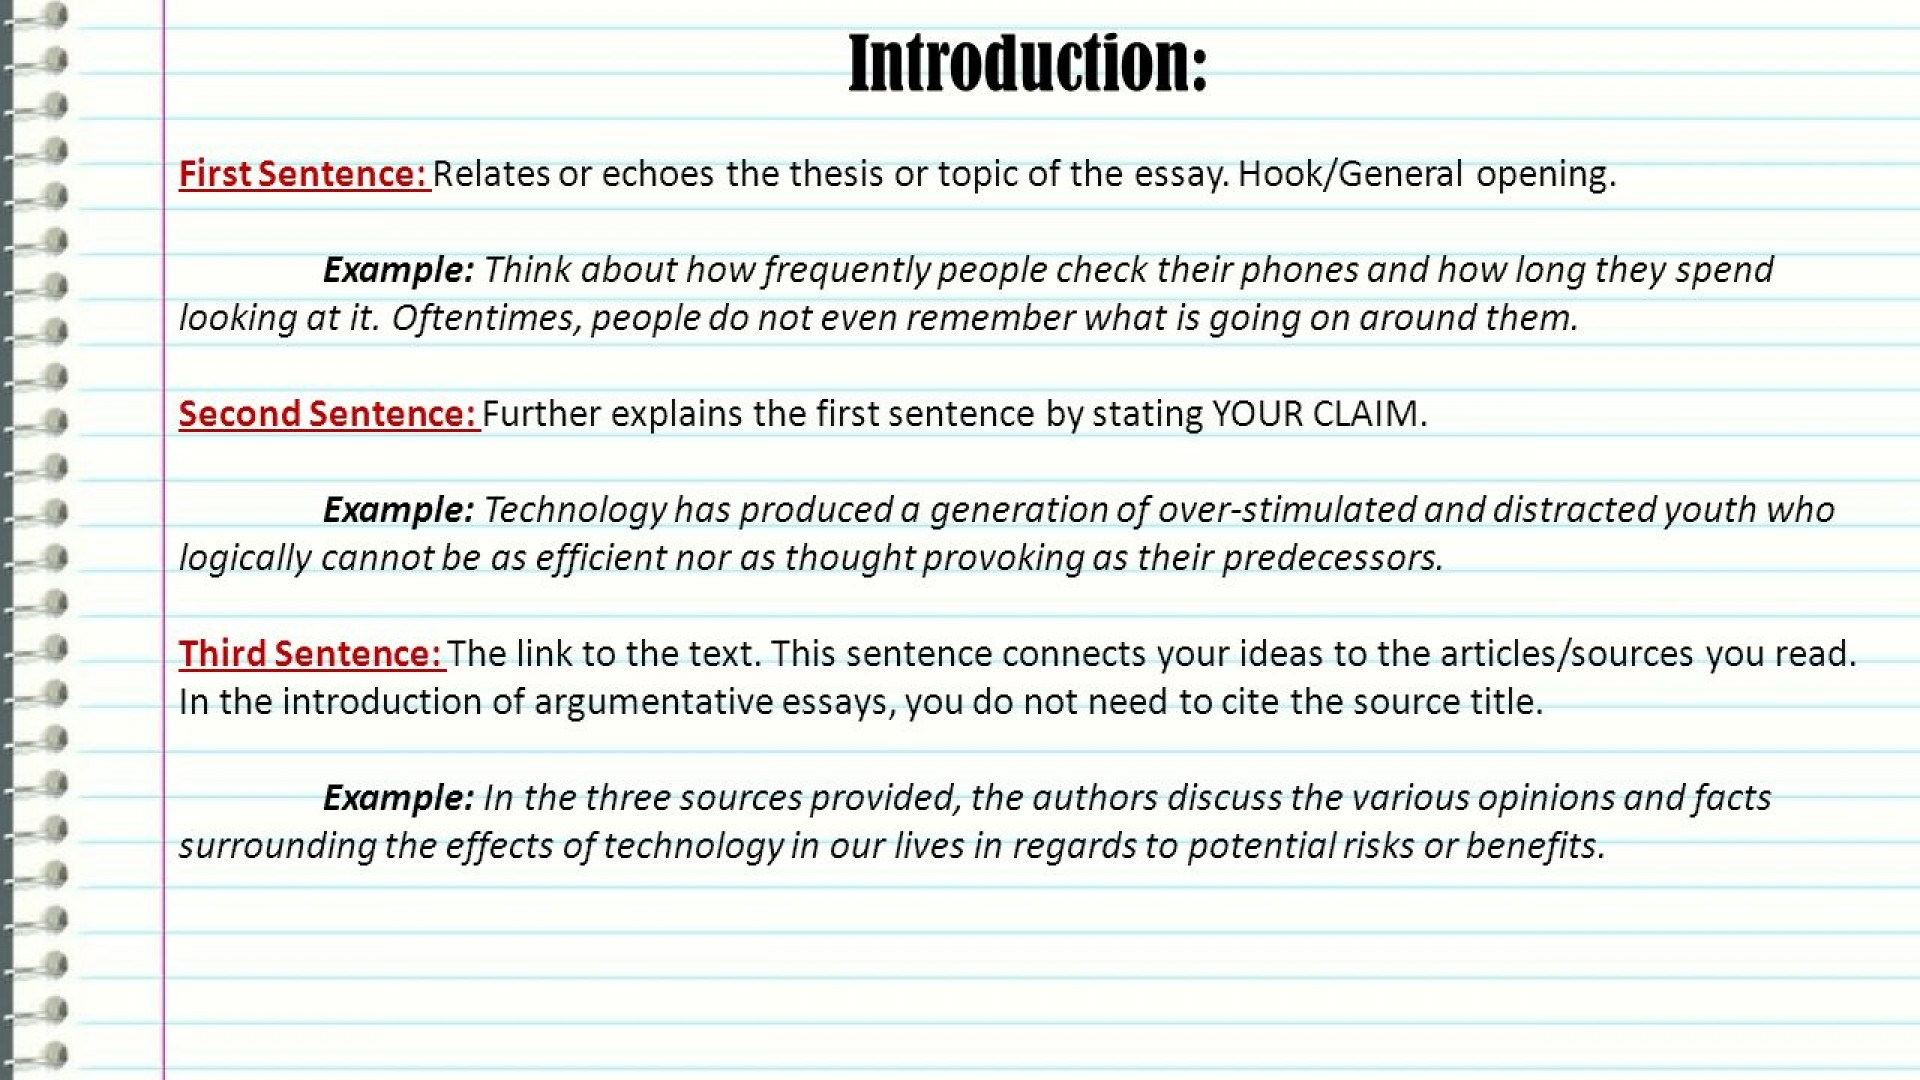 004 essay example good college hooks attention grabbing